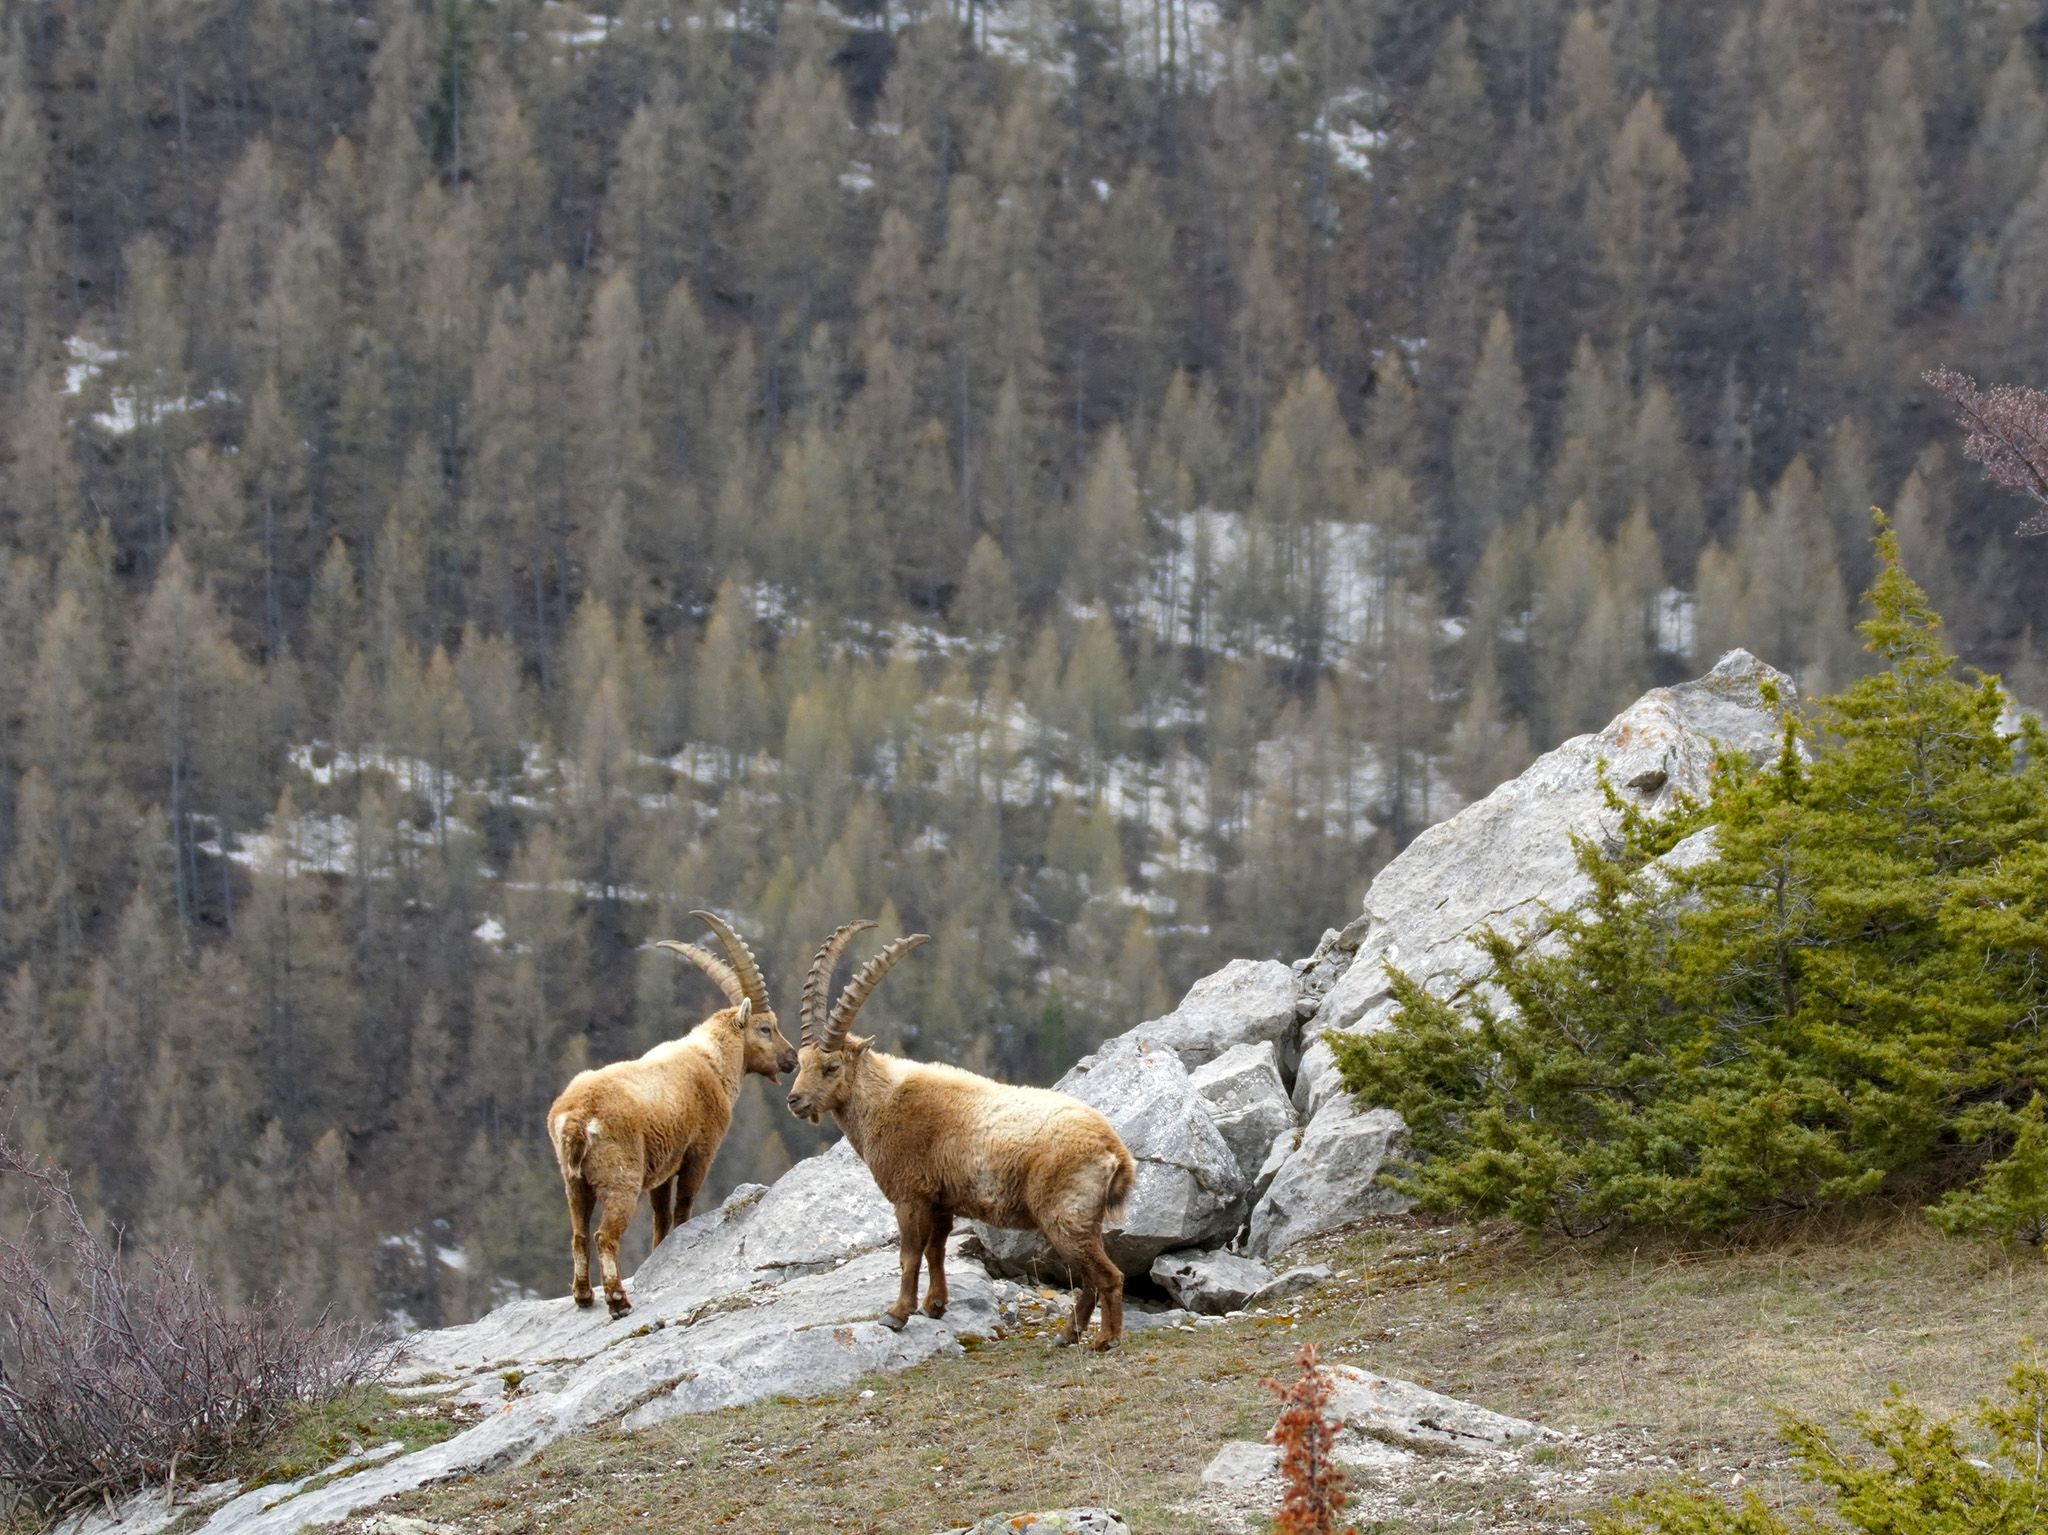 France:  Two ibex stand on a rocky hillside in the French Alps. This image is from Dr. Oakley:... [Foto del giorno - dicembre 2018]